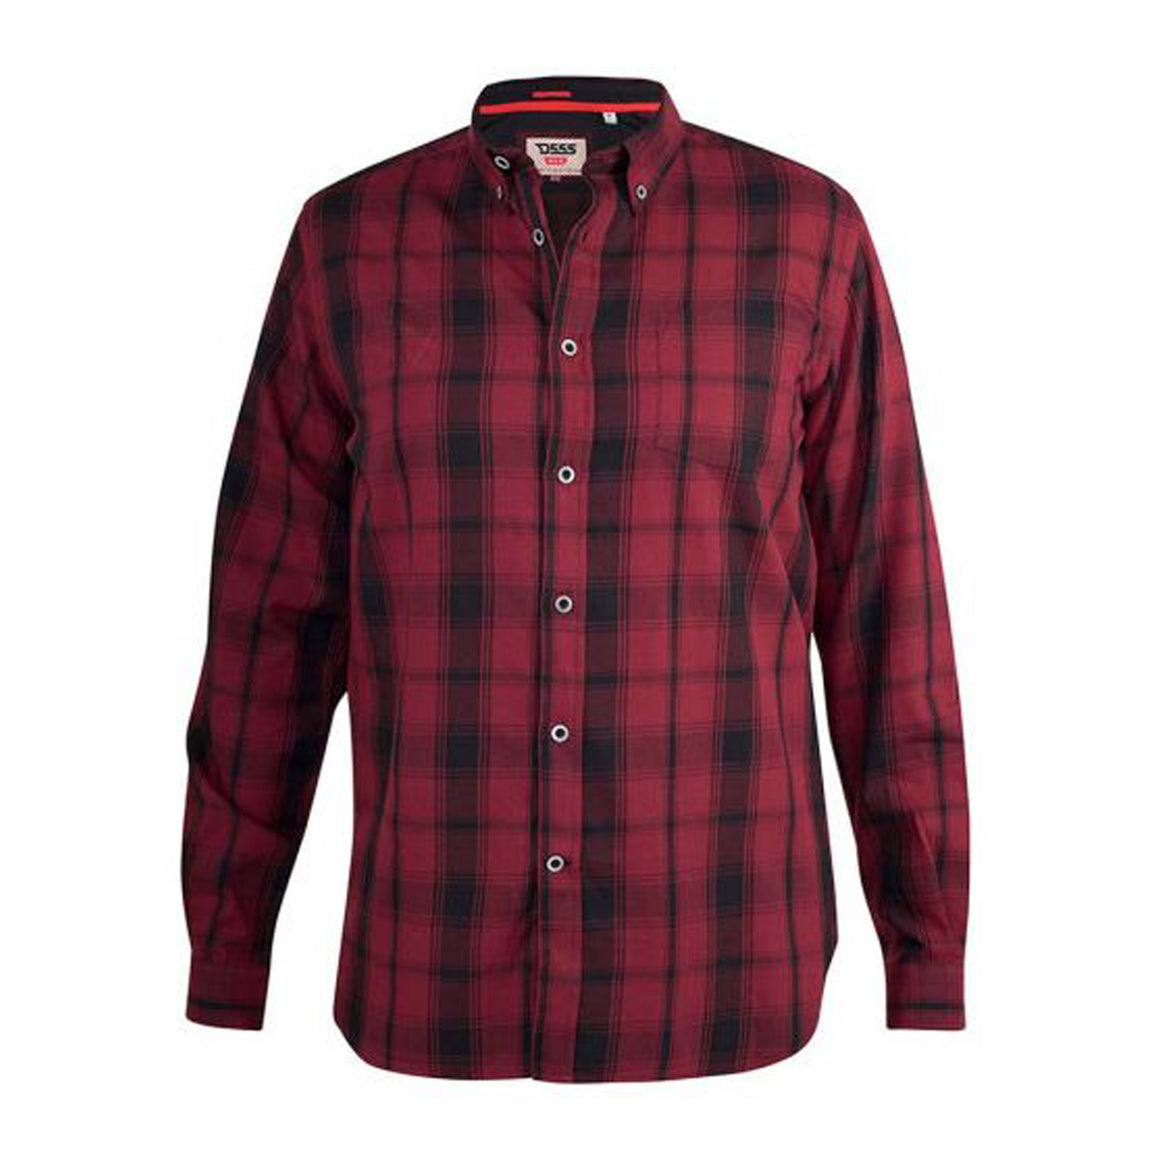 Benalla Long Sleeve Check Shirt  for Men in Red & Black